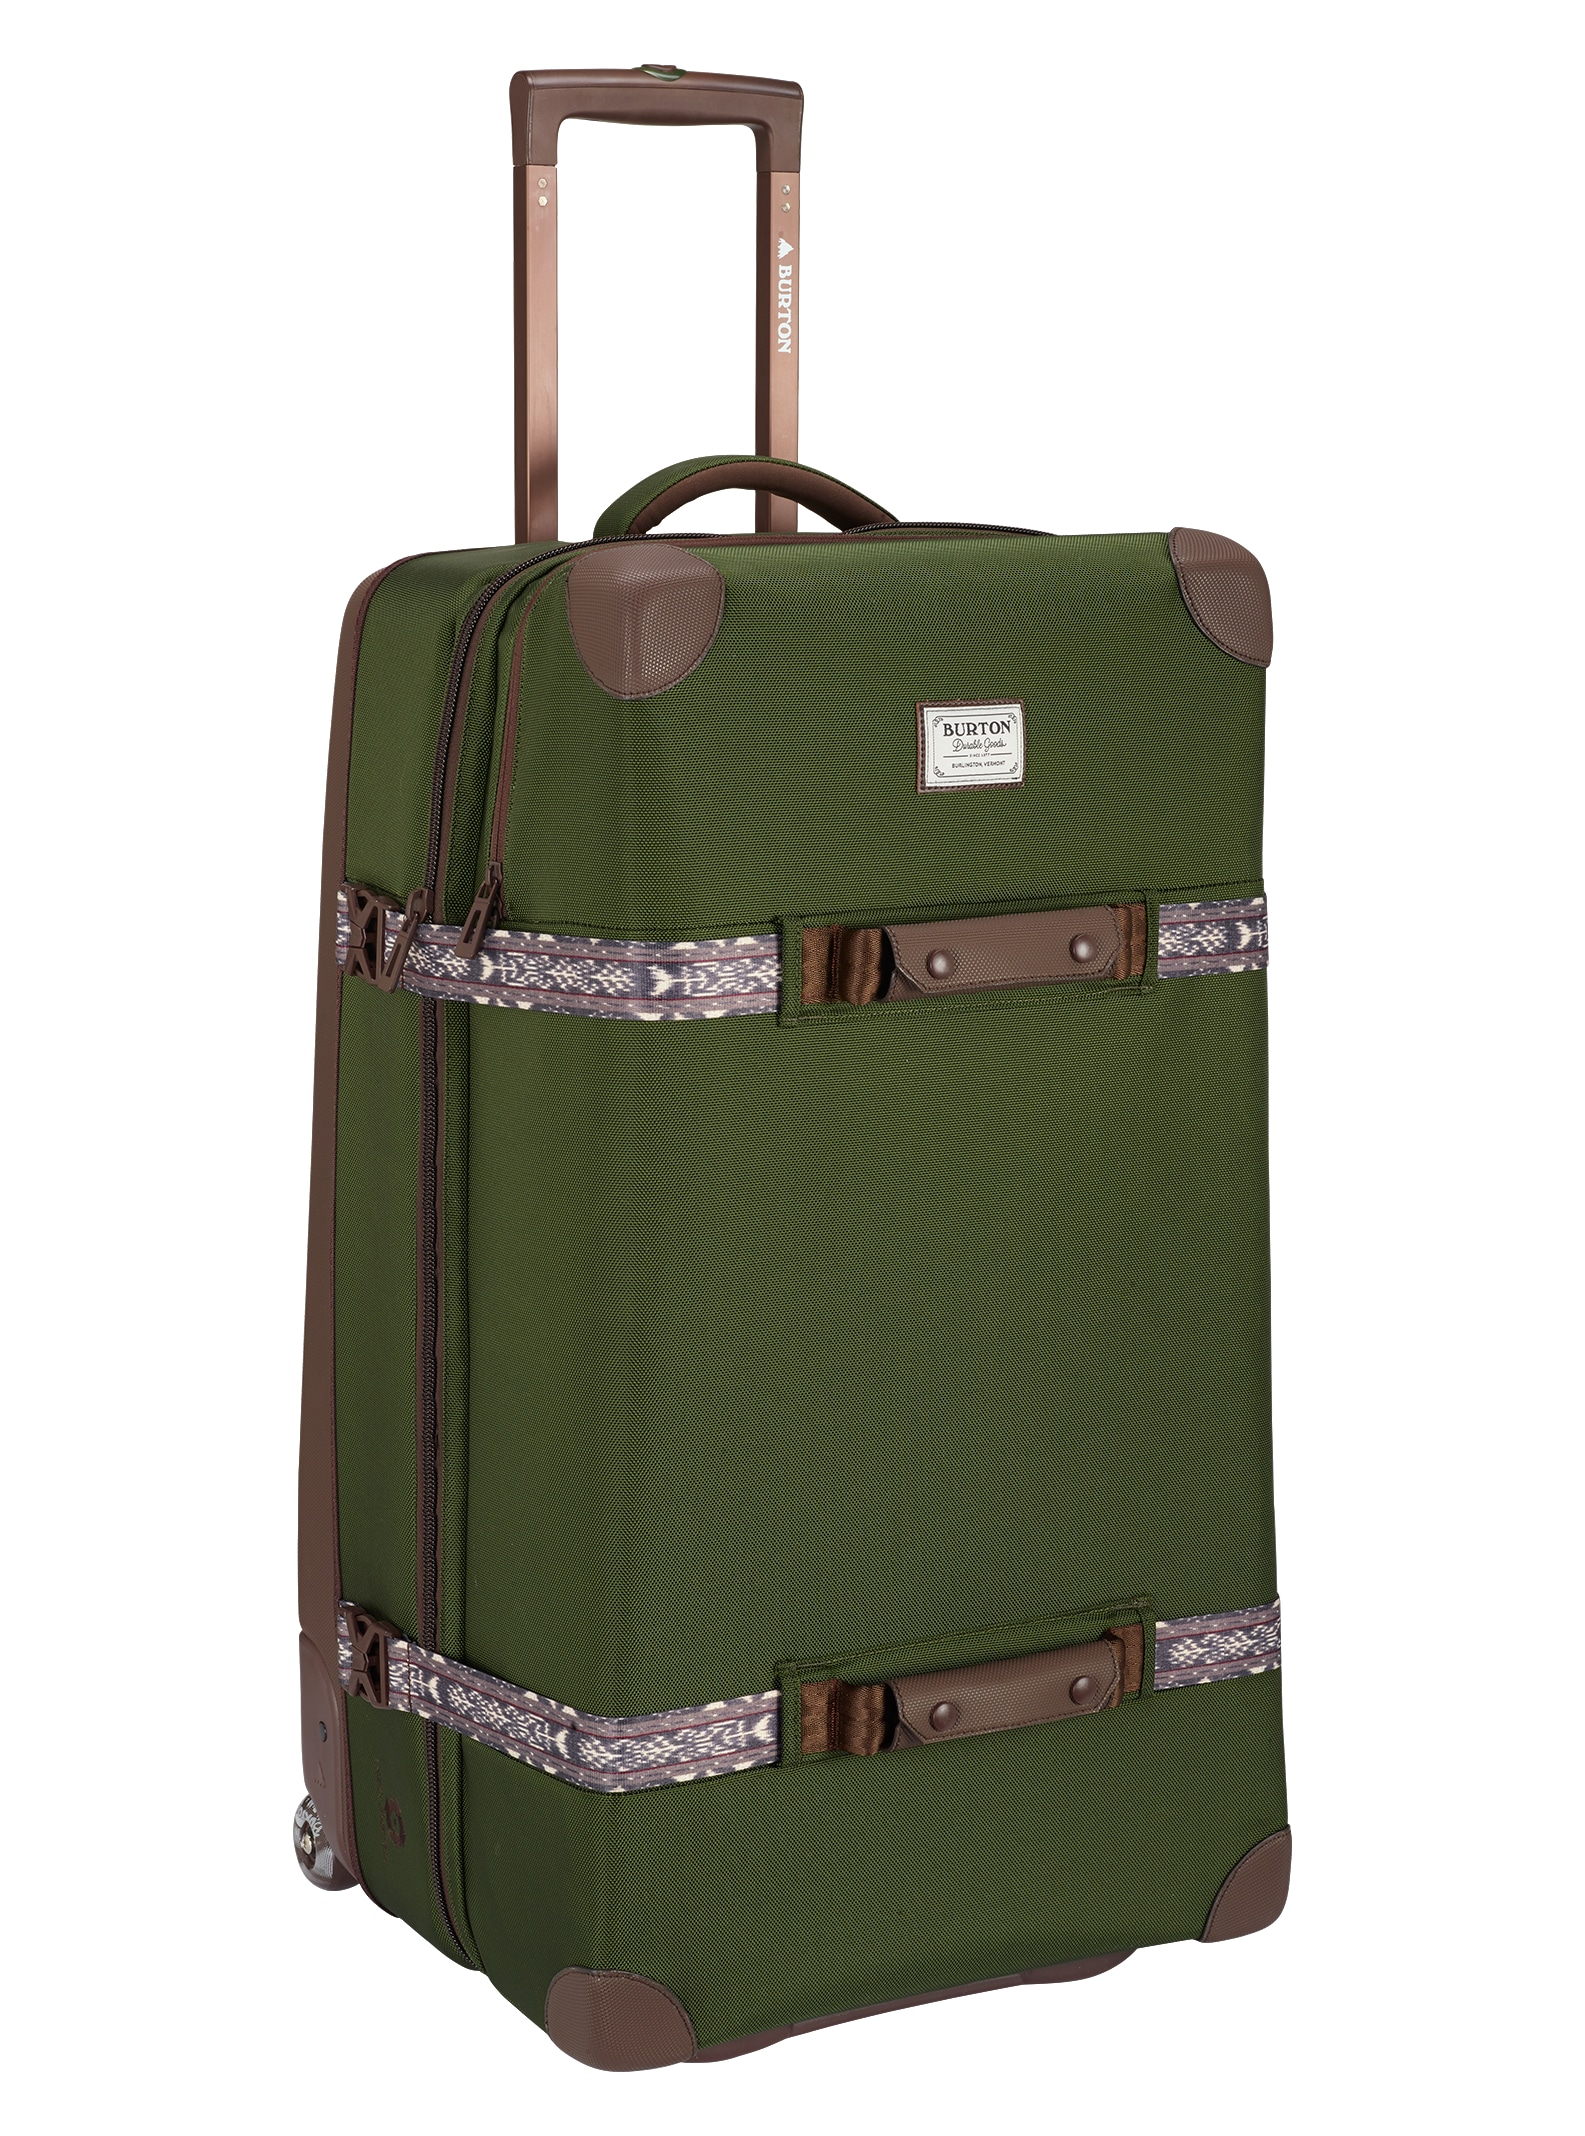 Burton - Valise à roulettes Wheelie Sub affichage en Rifle Green